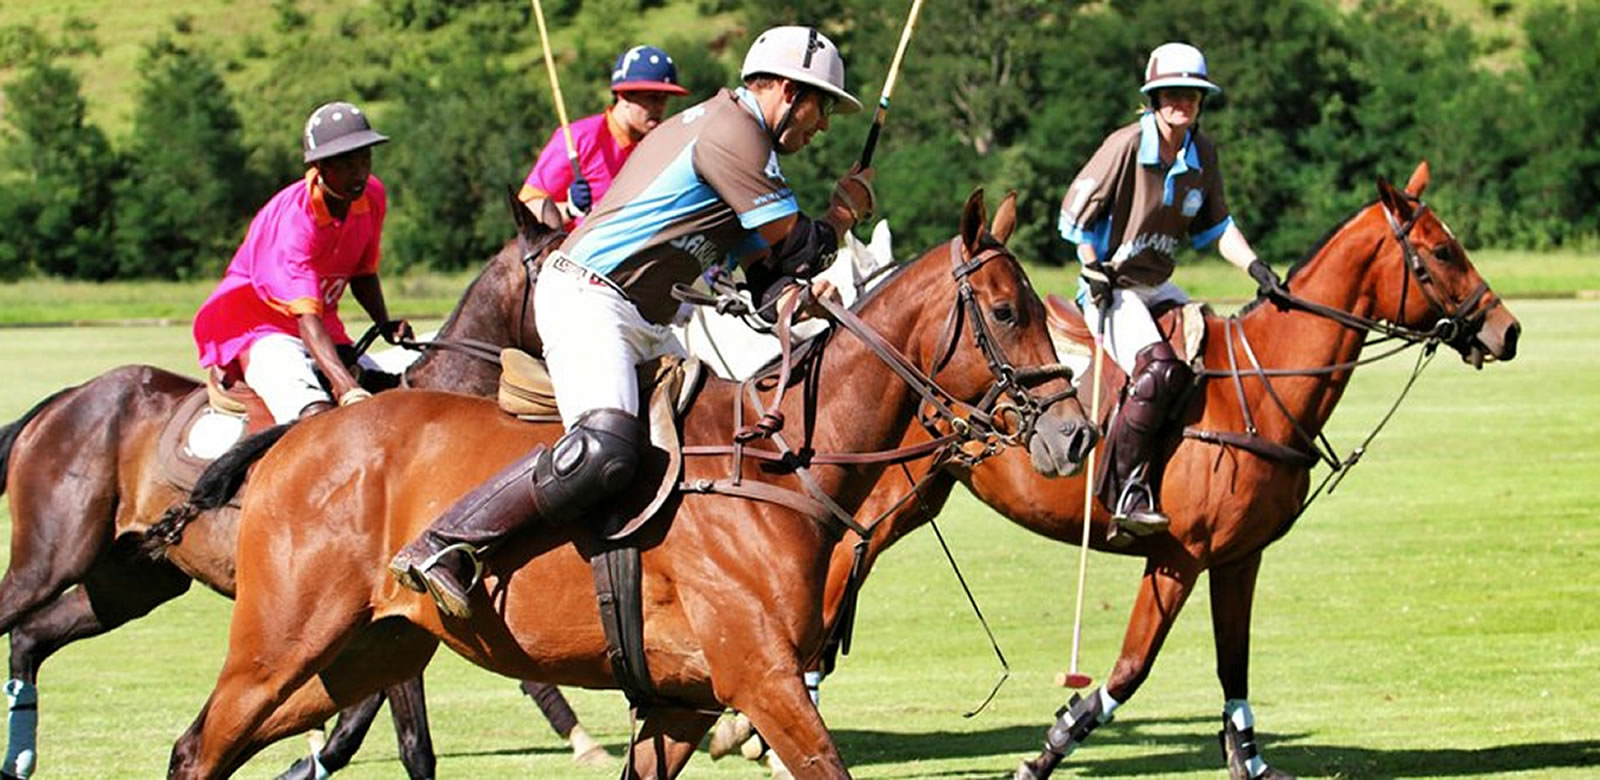 Polo in South Africa for holiday